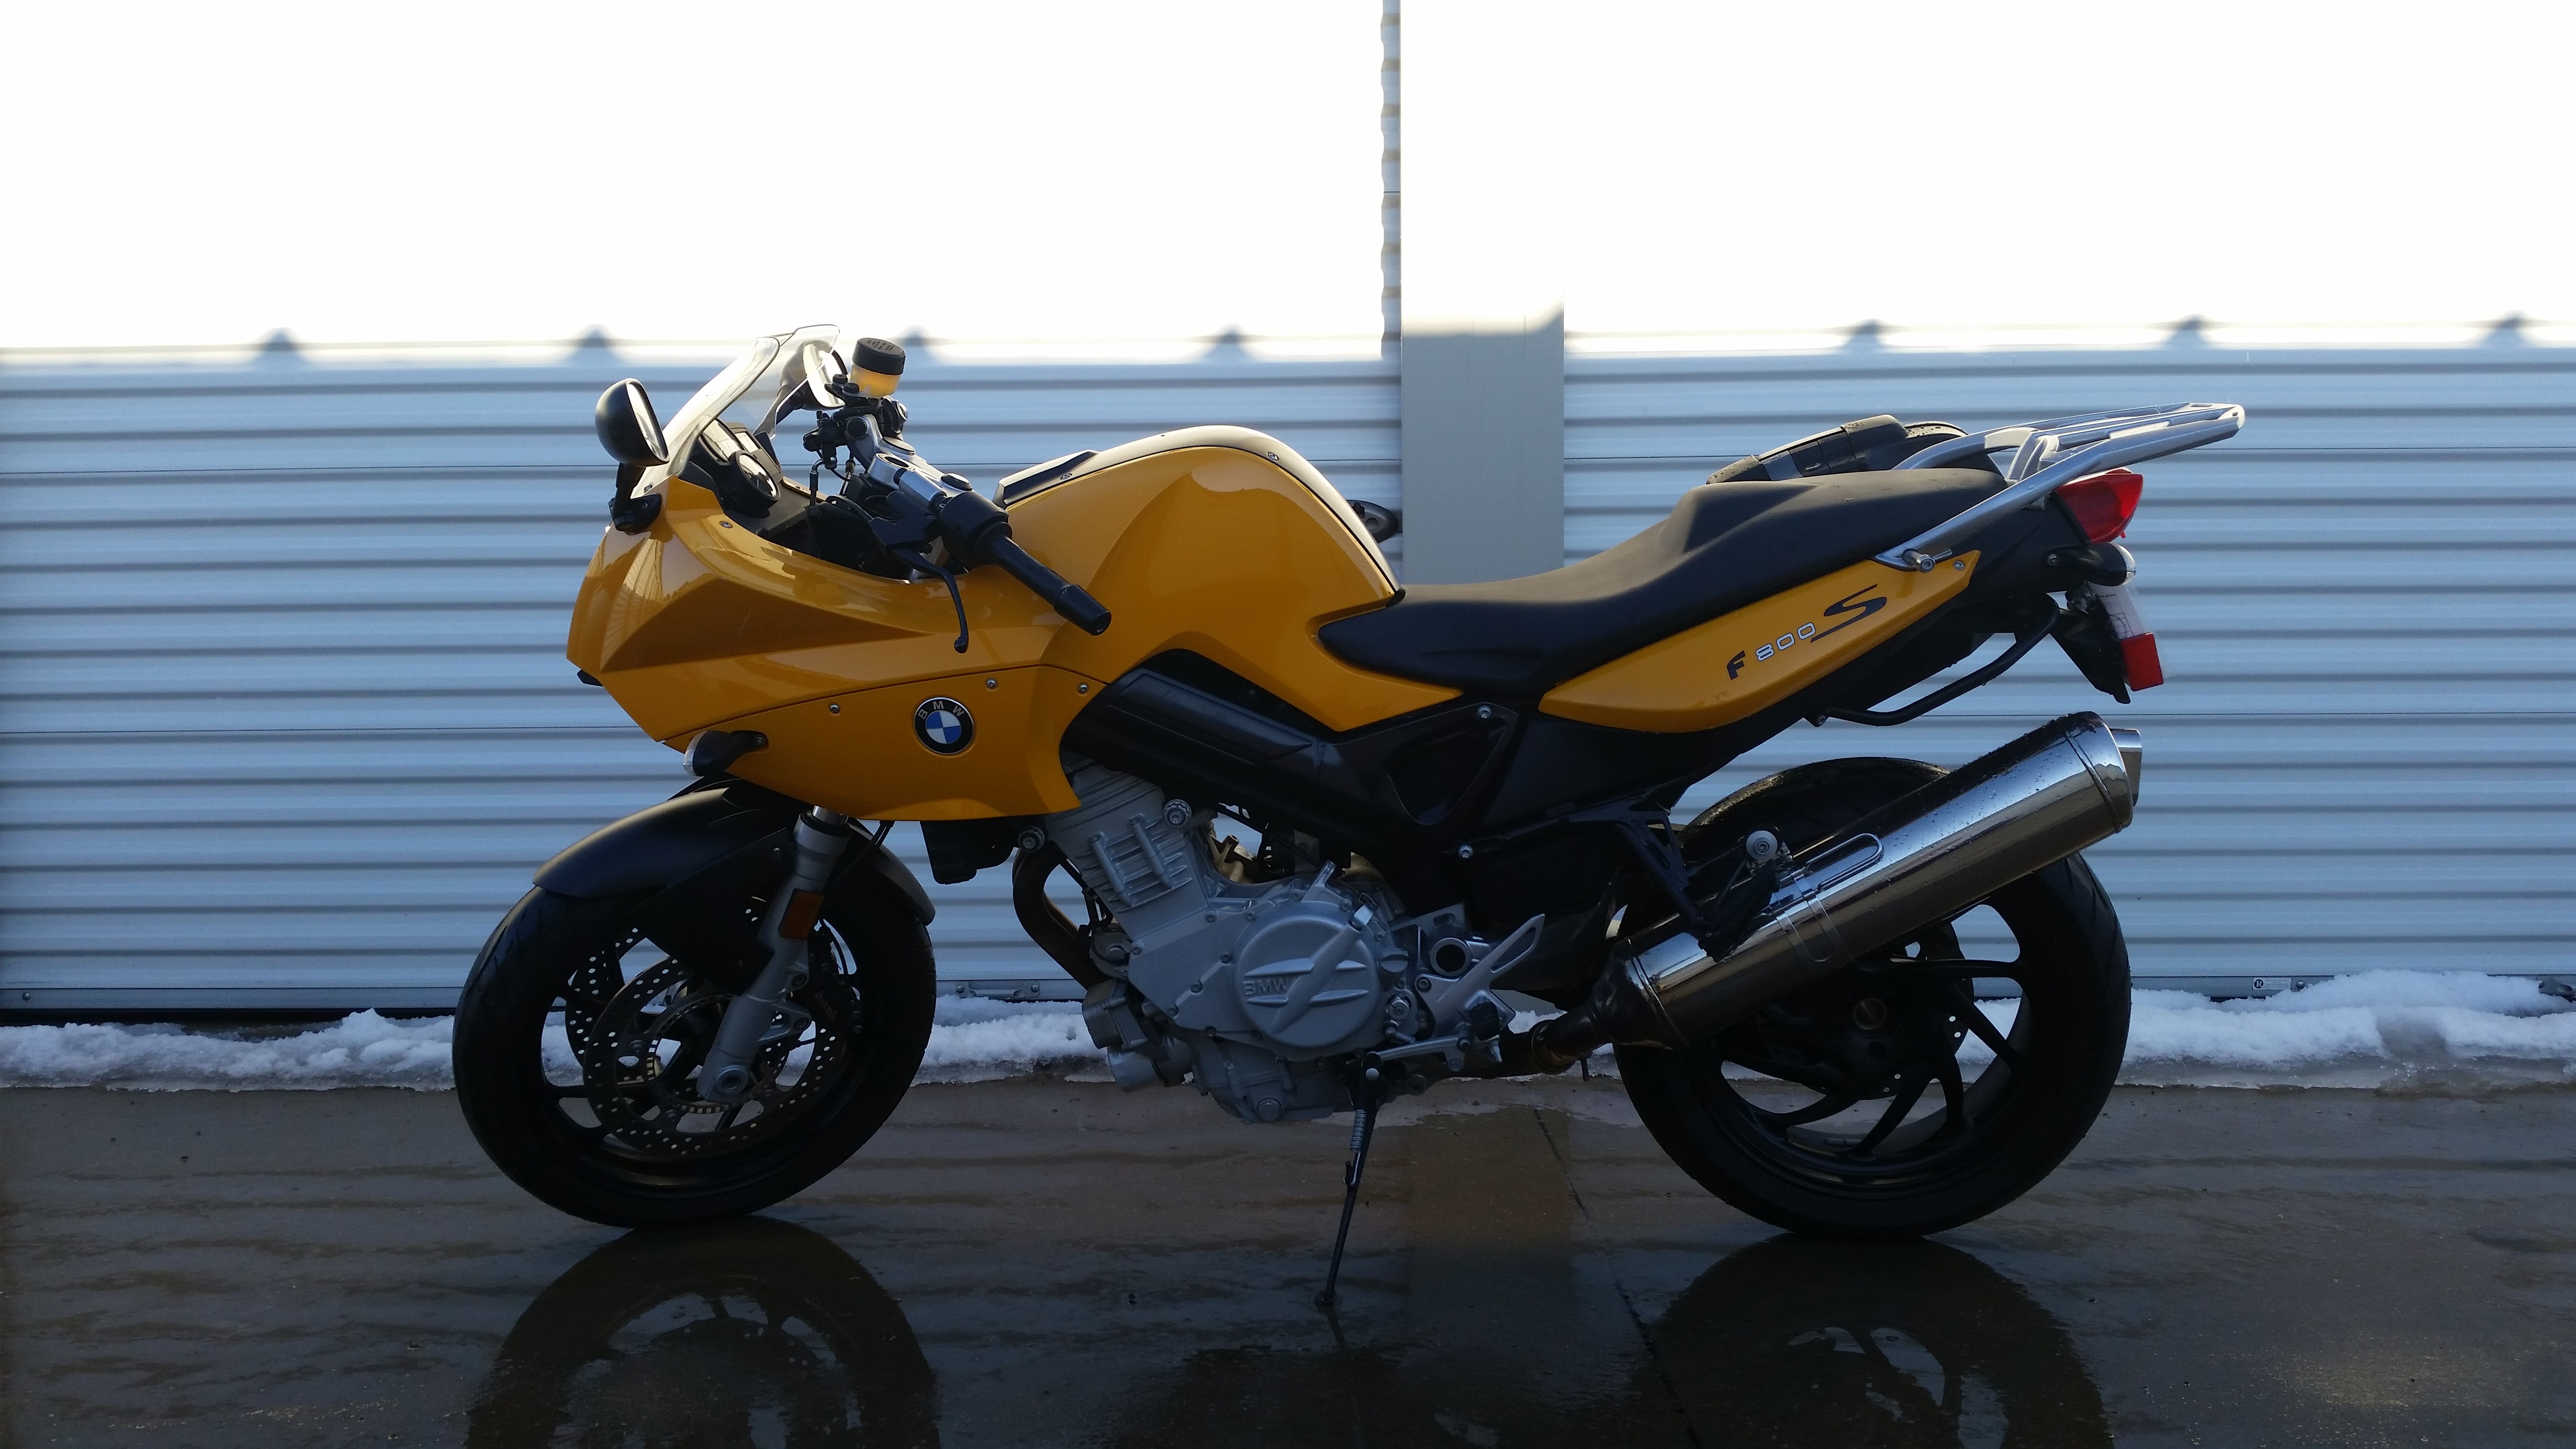 Yellow BMW motorcycle parked on street in Iowa